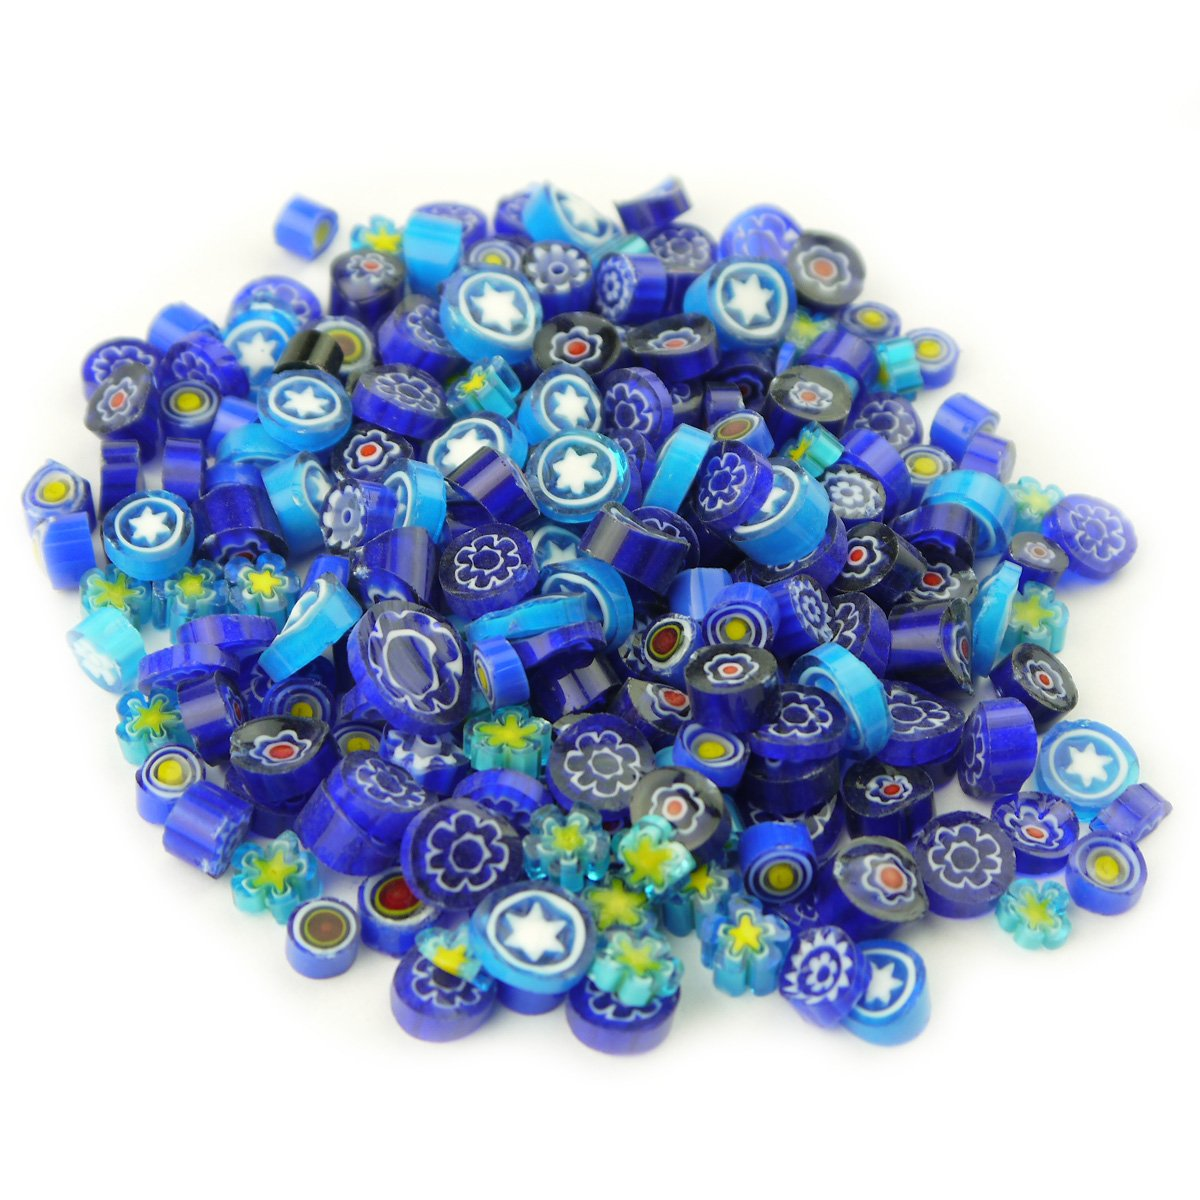 MS 100g appr. 100Pcs Blue Colors Venice Hand Fusible Glass Beads Mosaic Charms